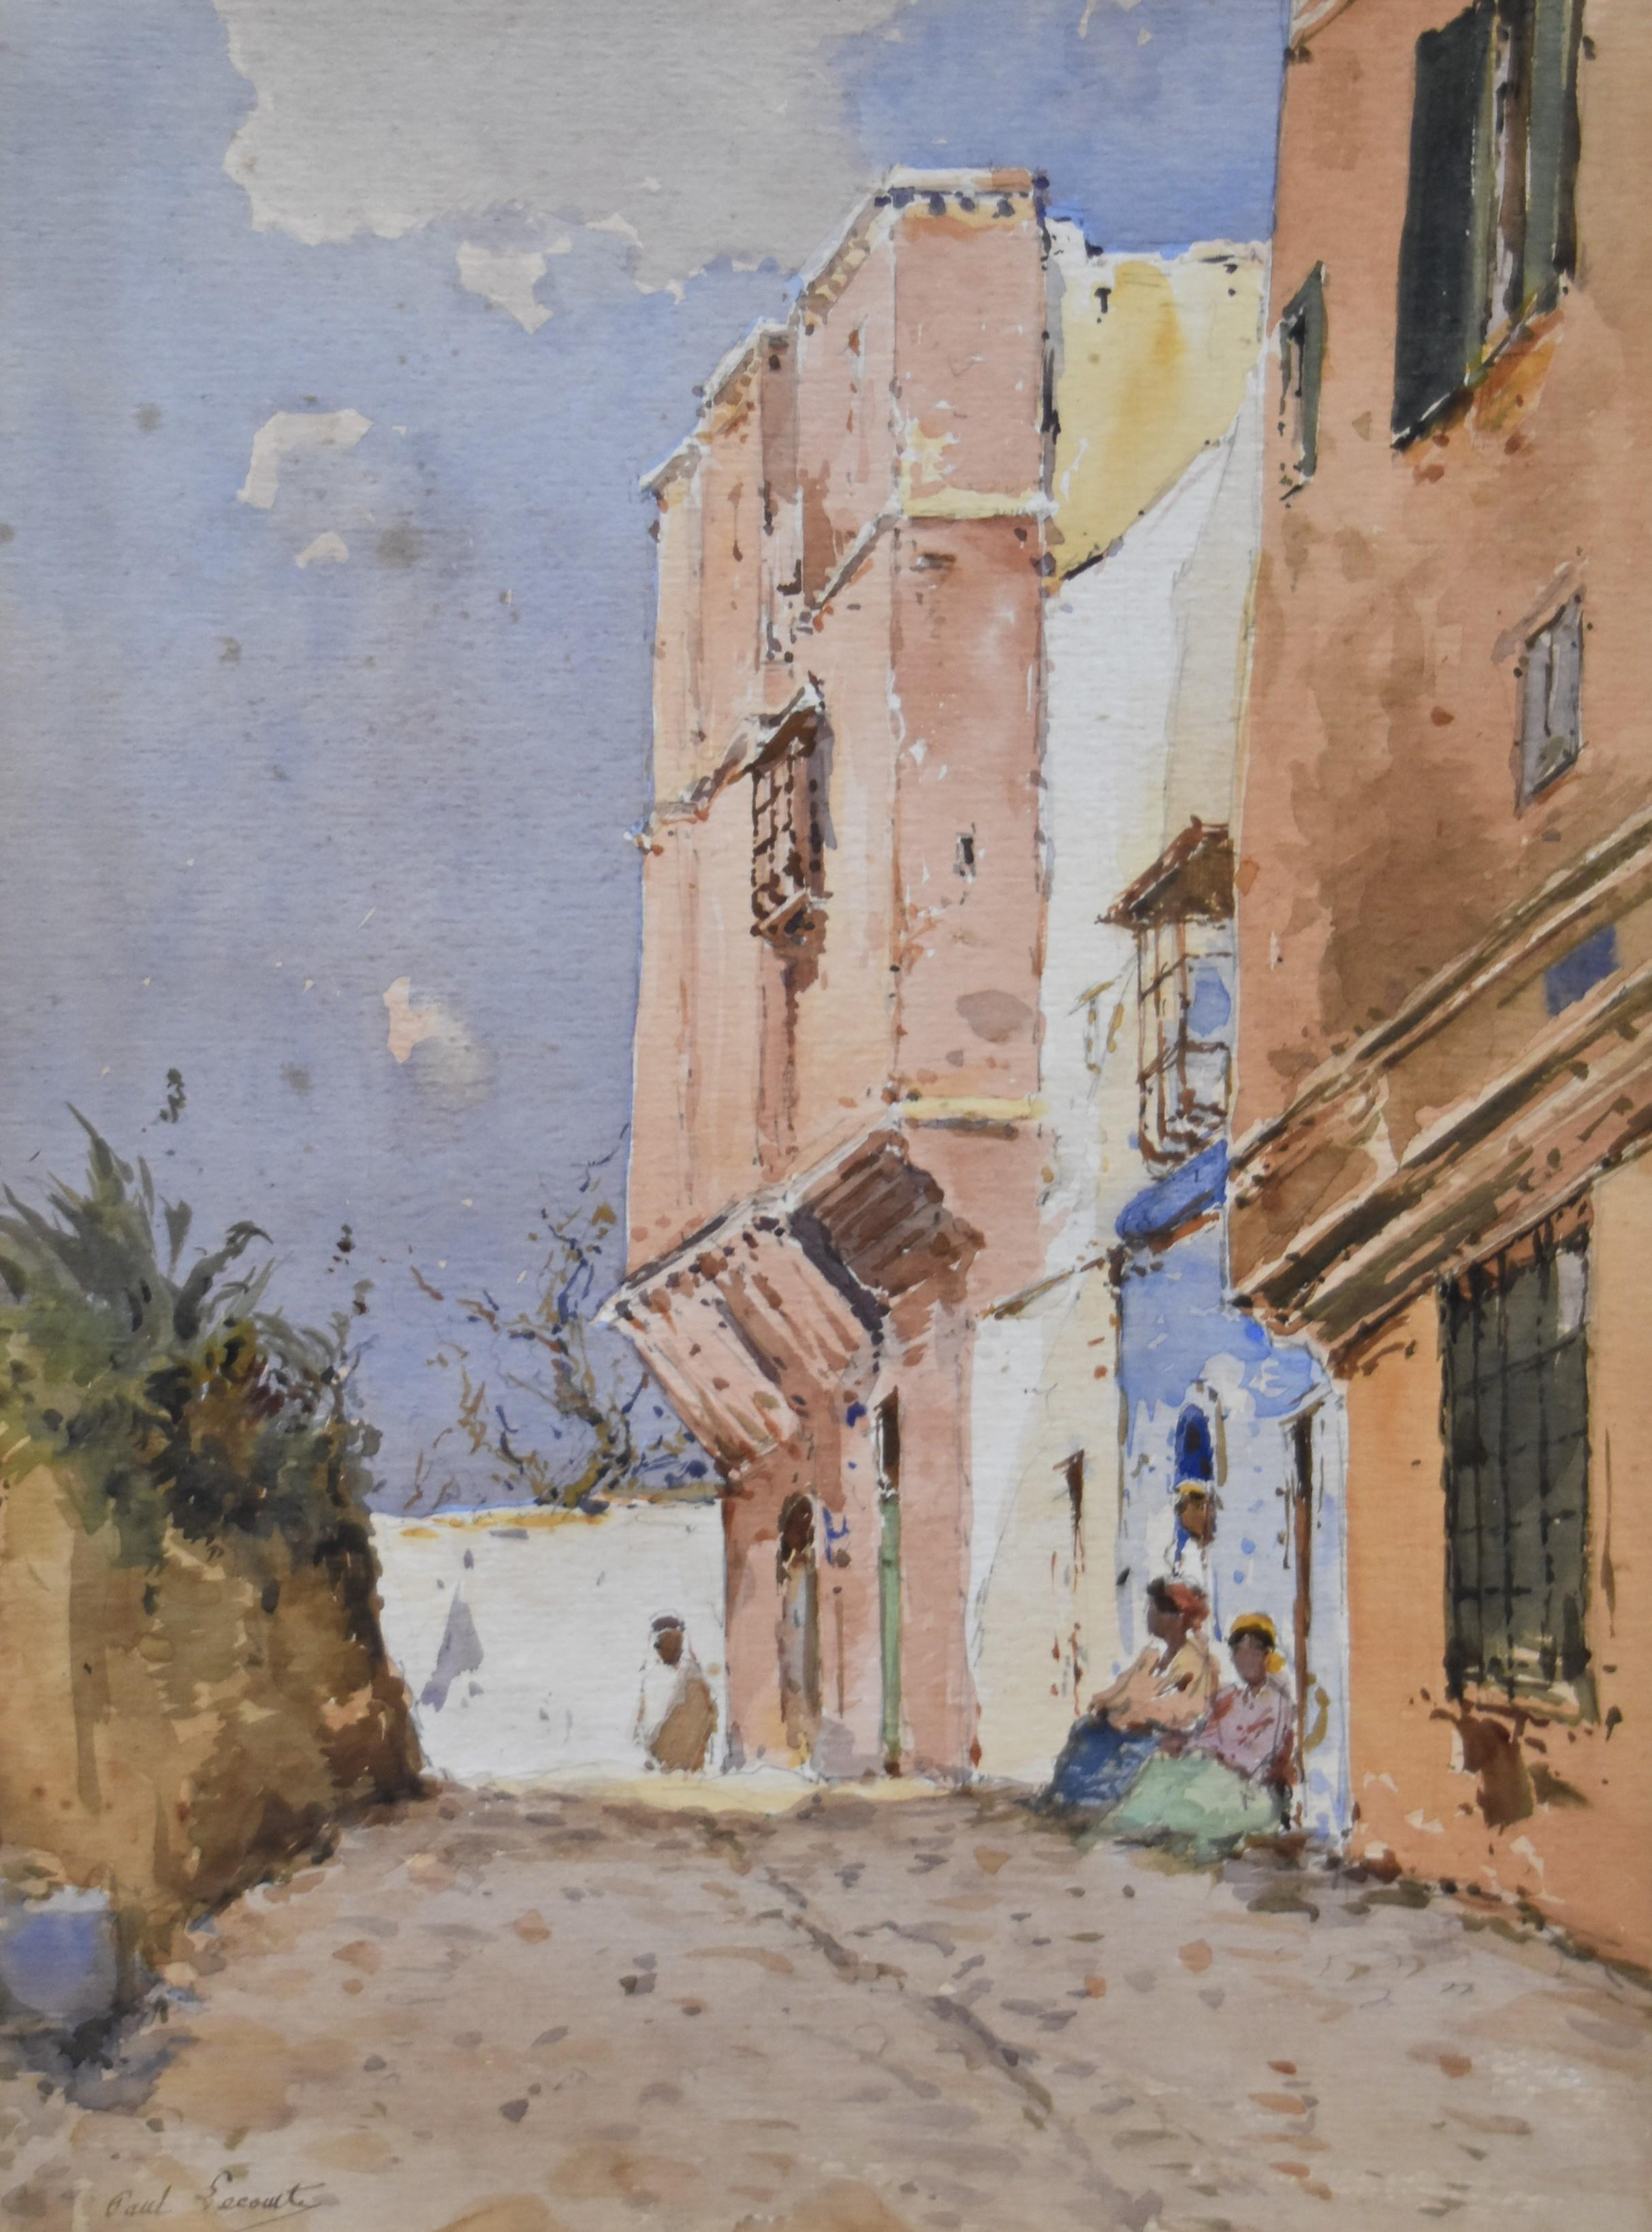 Paul Lecomte (1842-1920) A street in North africa, watercolor